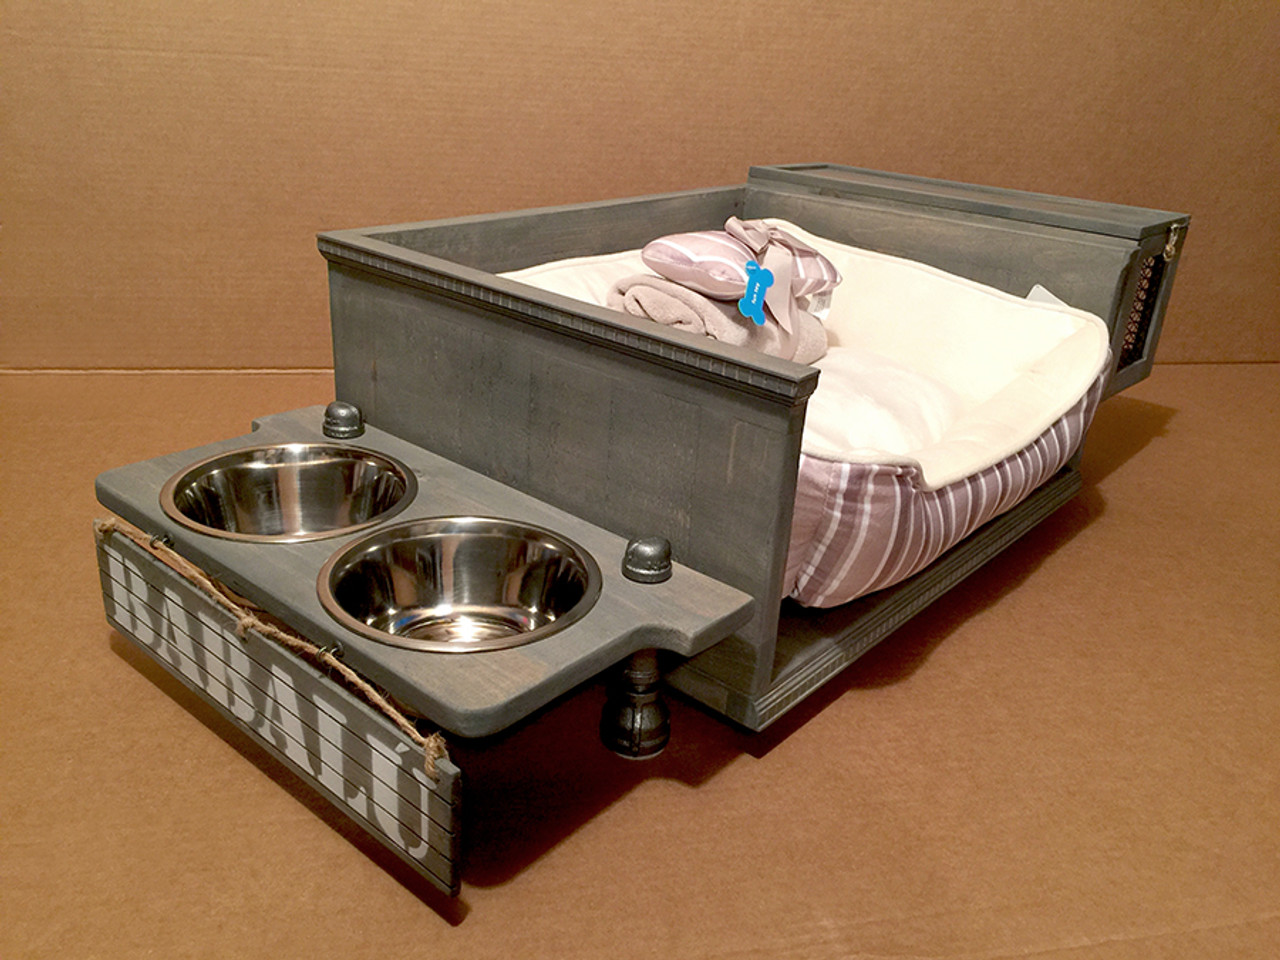 Raised All In One Dog Feeding Station, Bed Futon And Toy Storage Bin